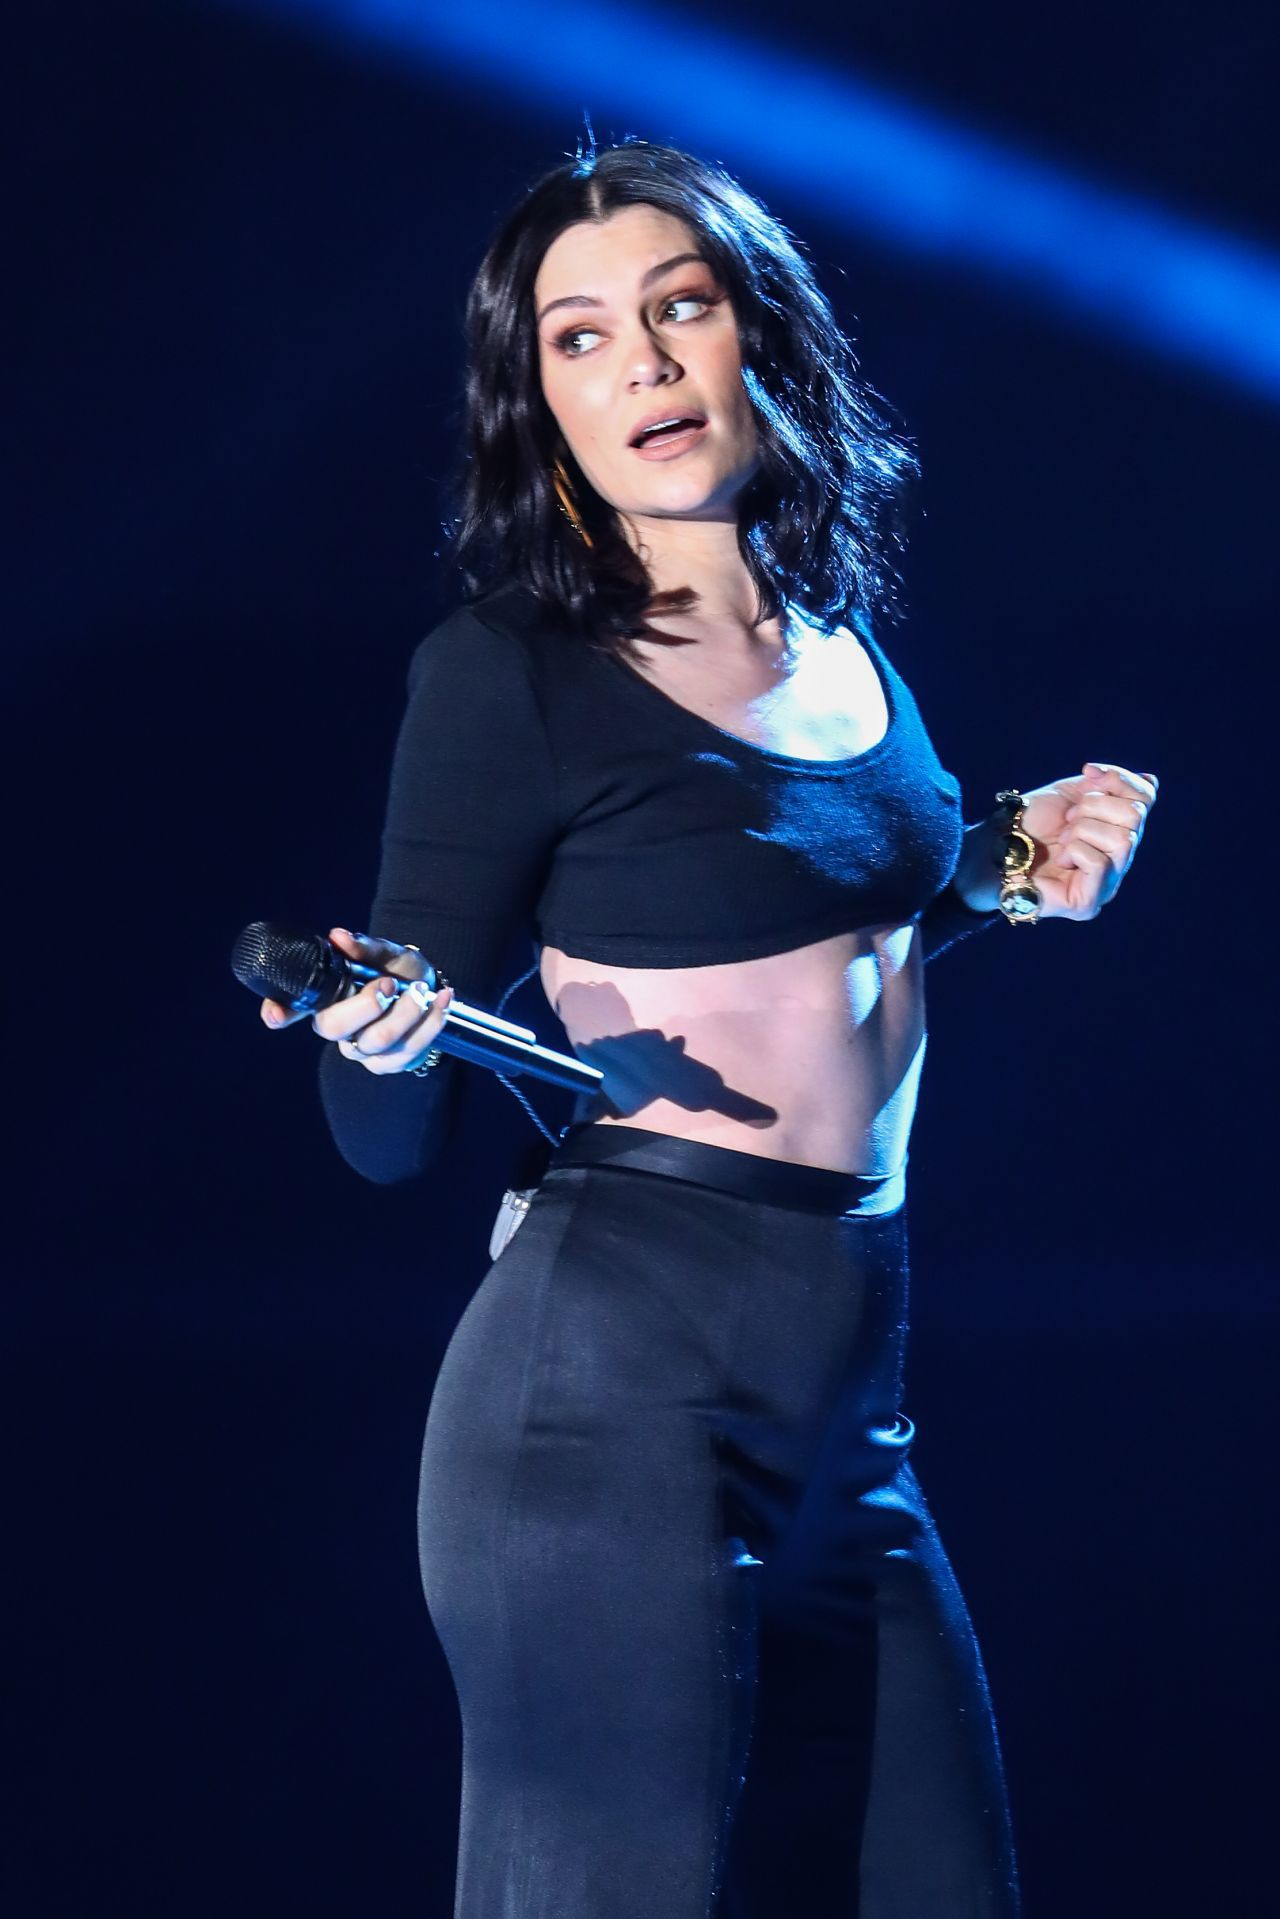 jessie-j-we-day-show-at-wembley-arena-in-london-3-22-2017-1-1527752508530113268036.jpg